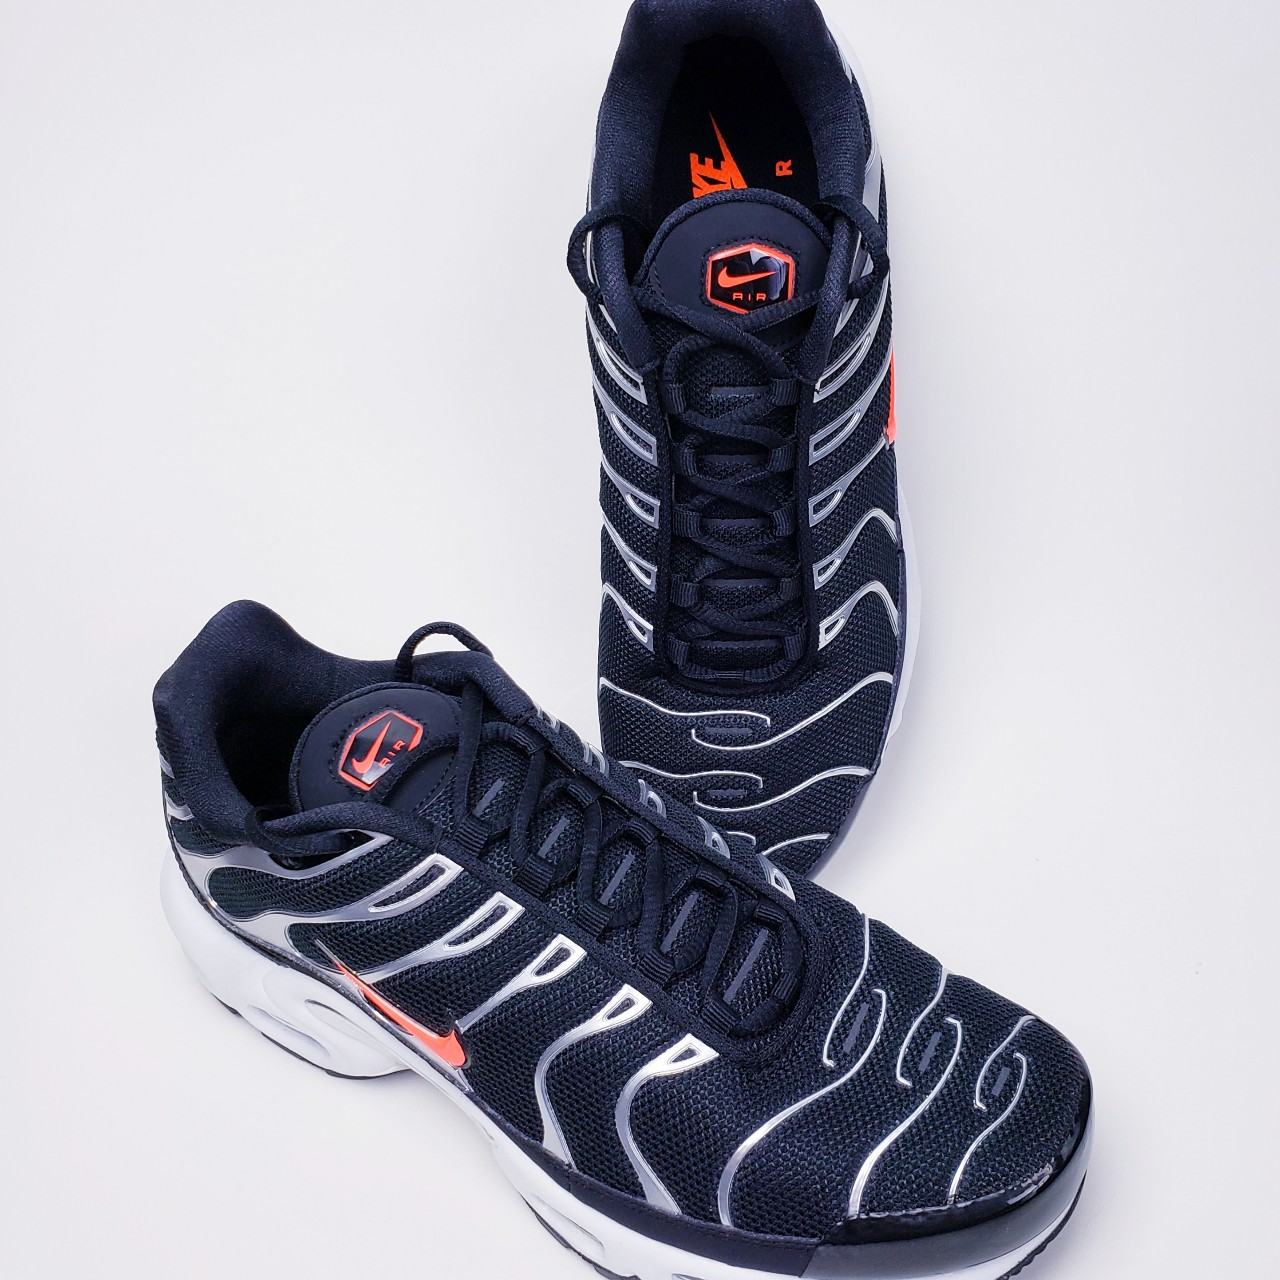 competitive price a4719 dd123 NEW Nike Air Max Plus TN SE Tuned Black Silver... - Depop